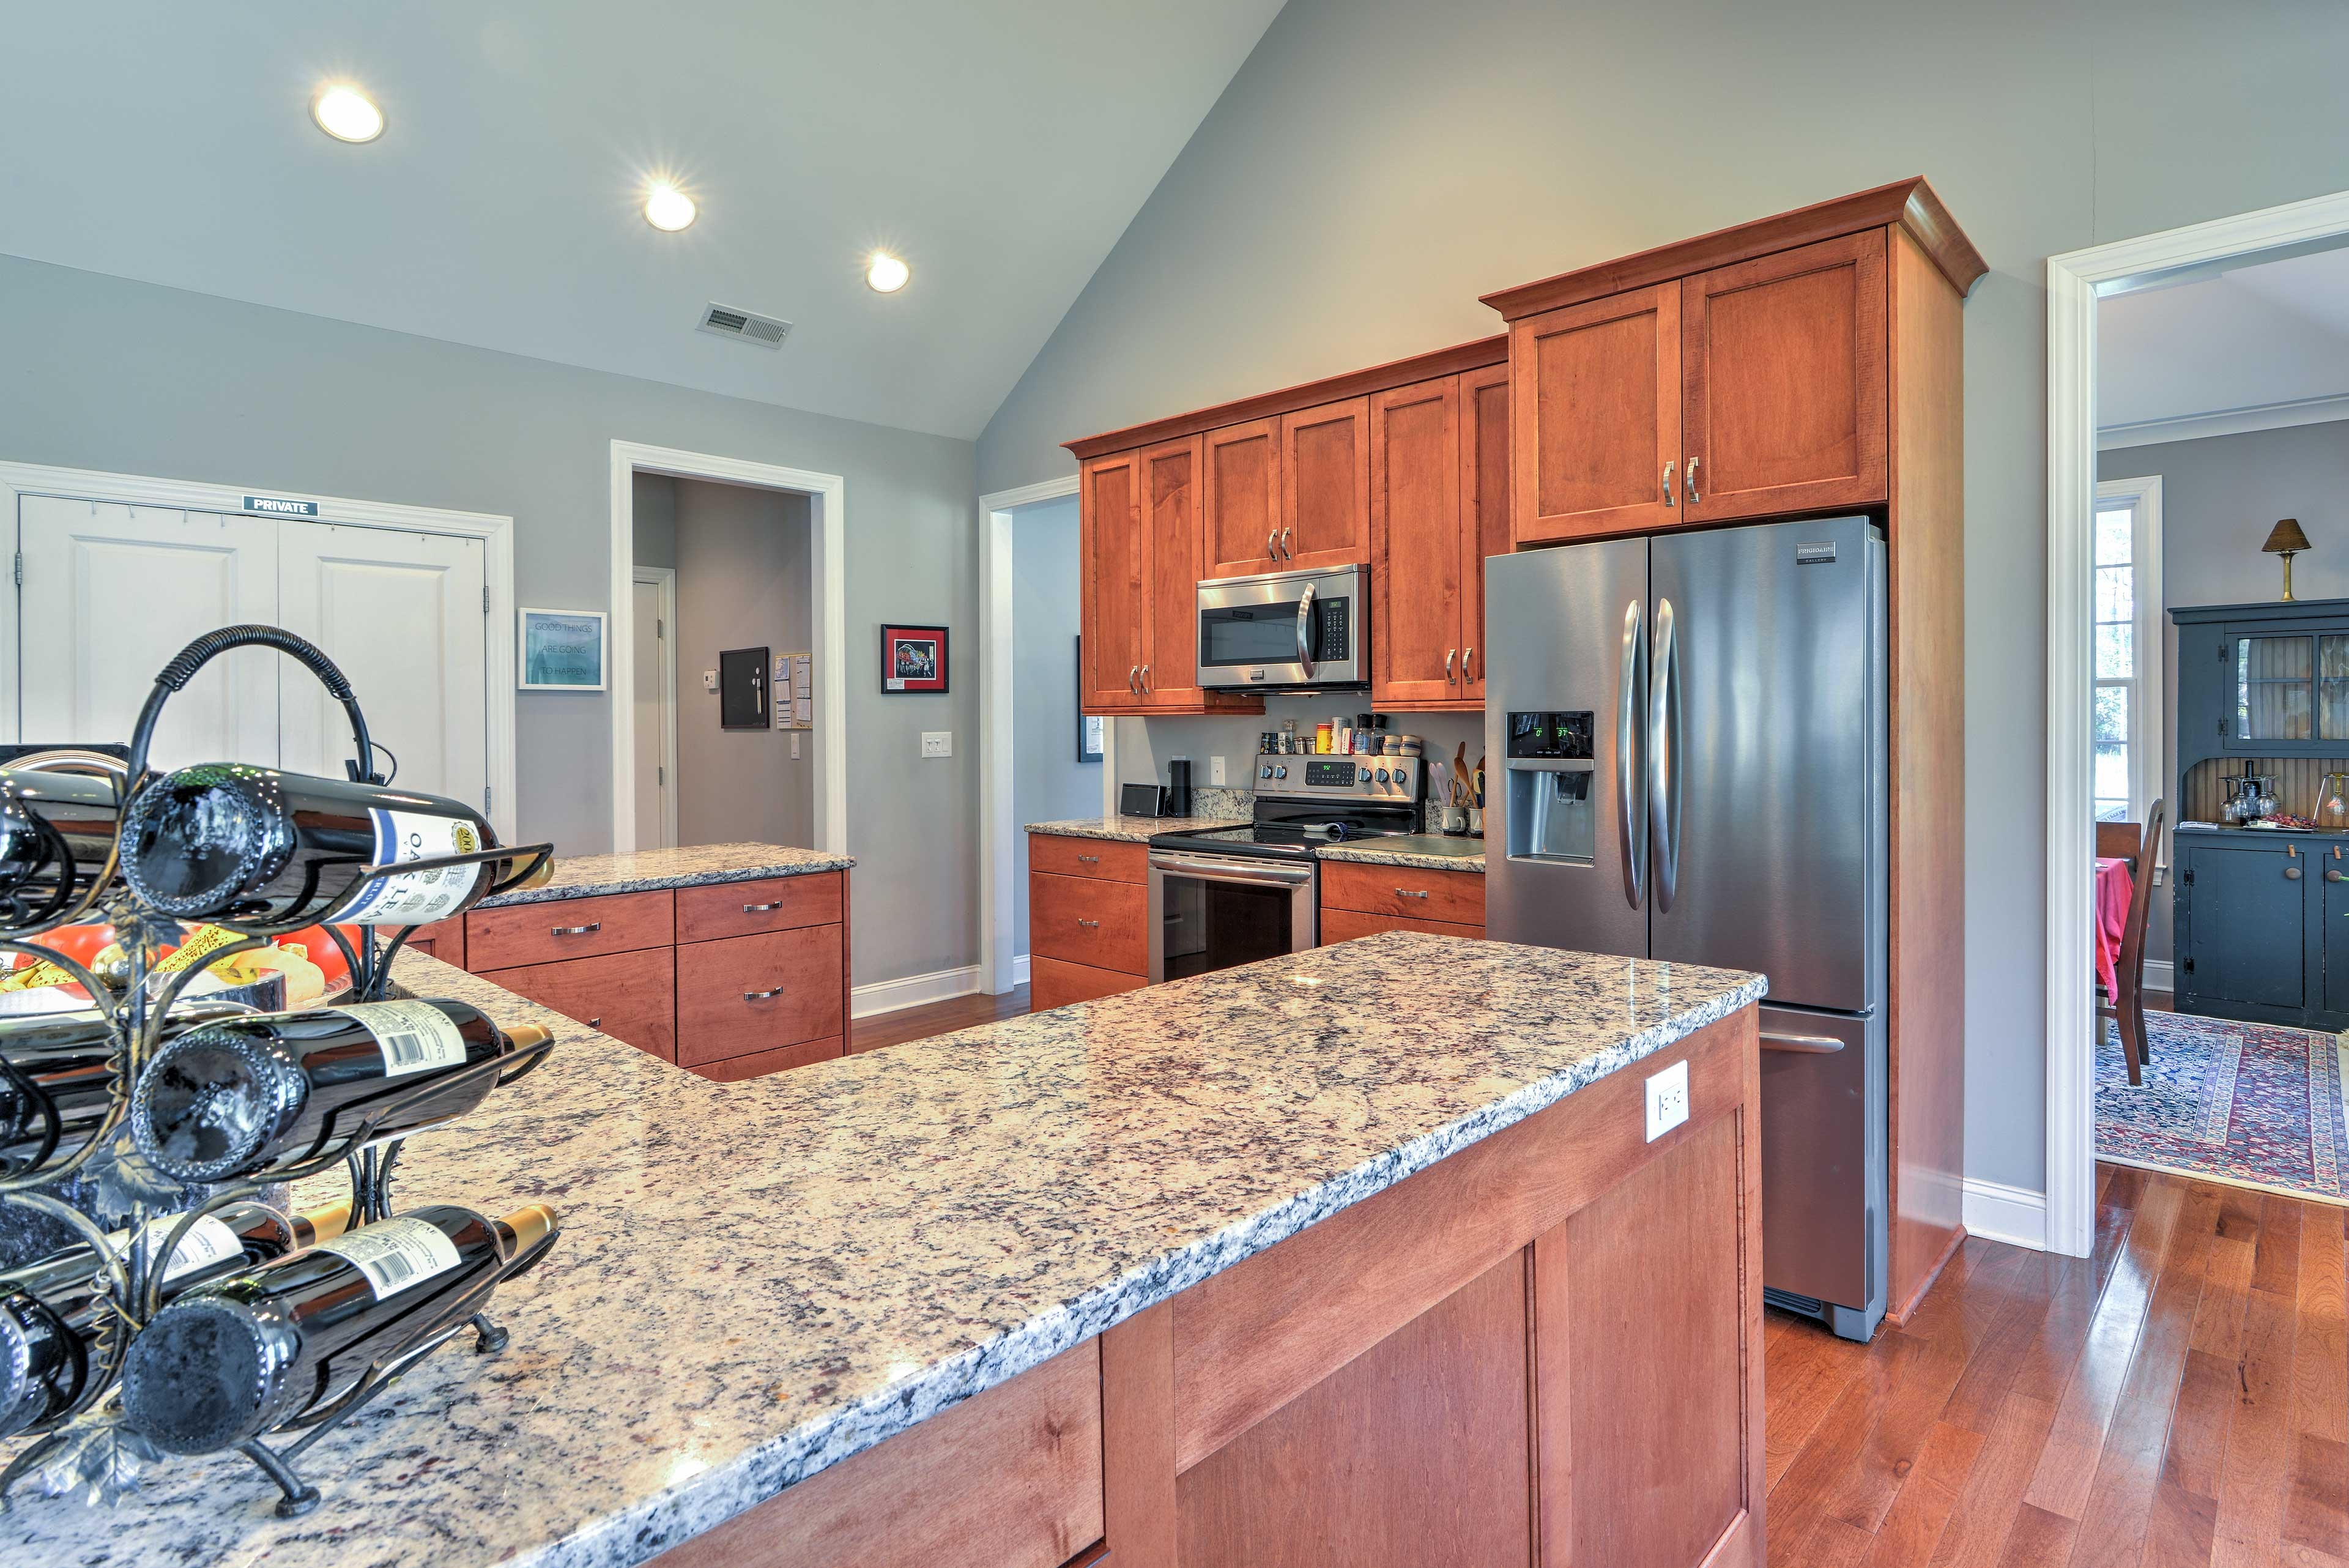 Relish the stainless steel appliances, granite counters, and natural wood elements.